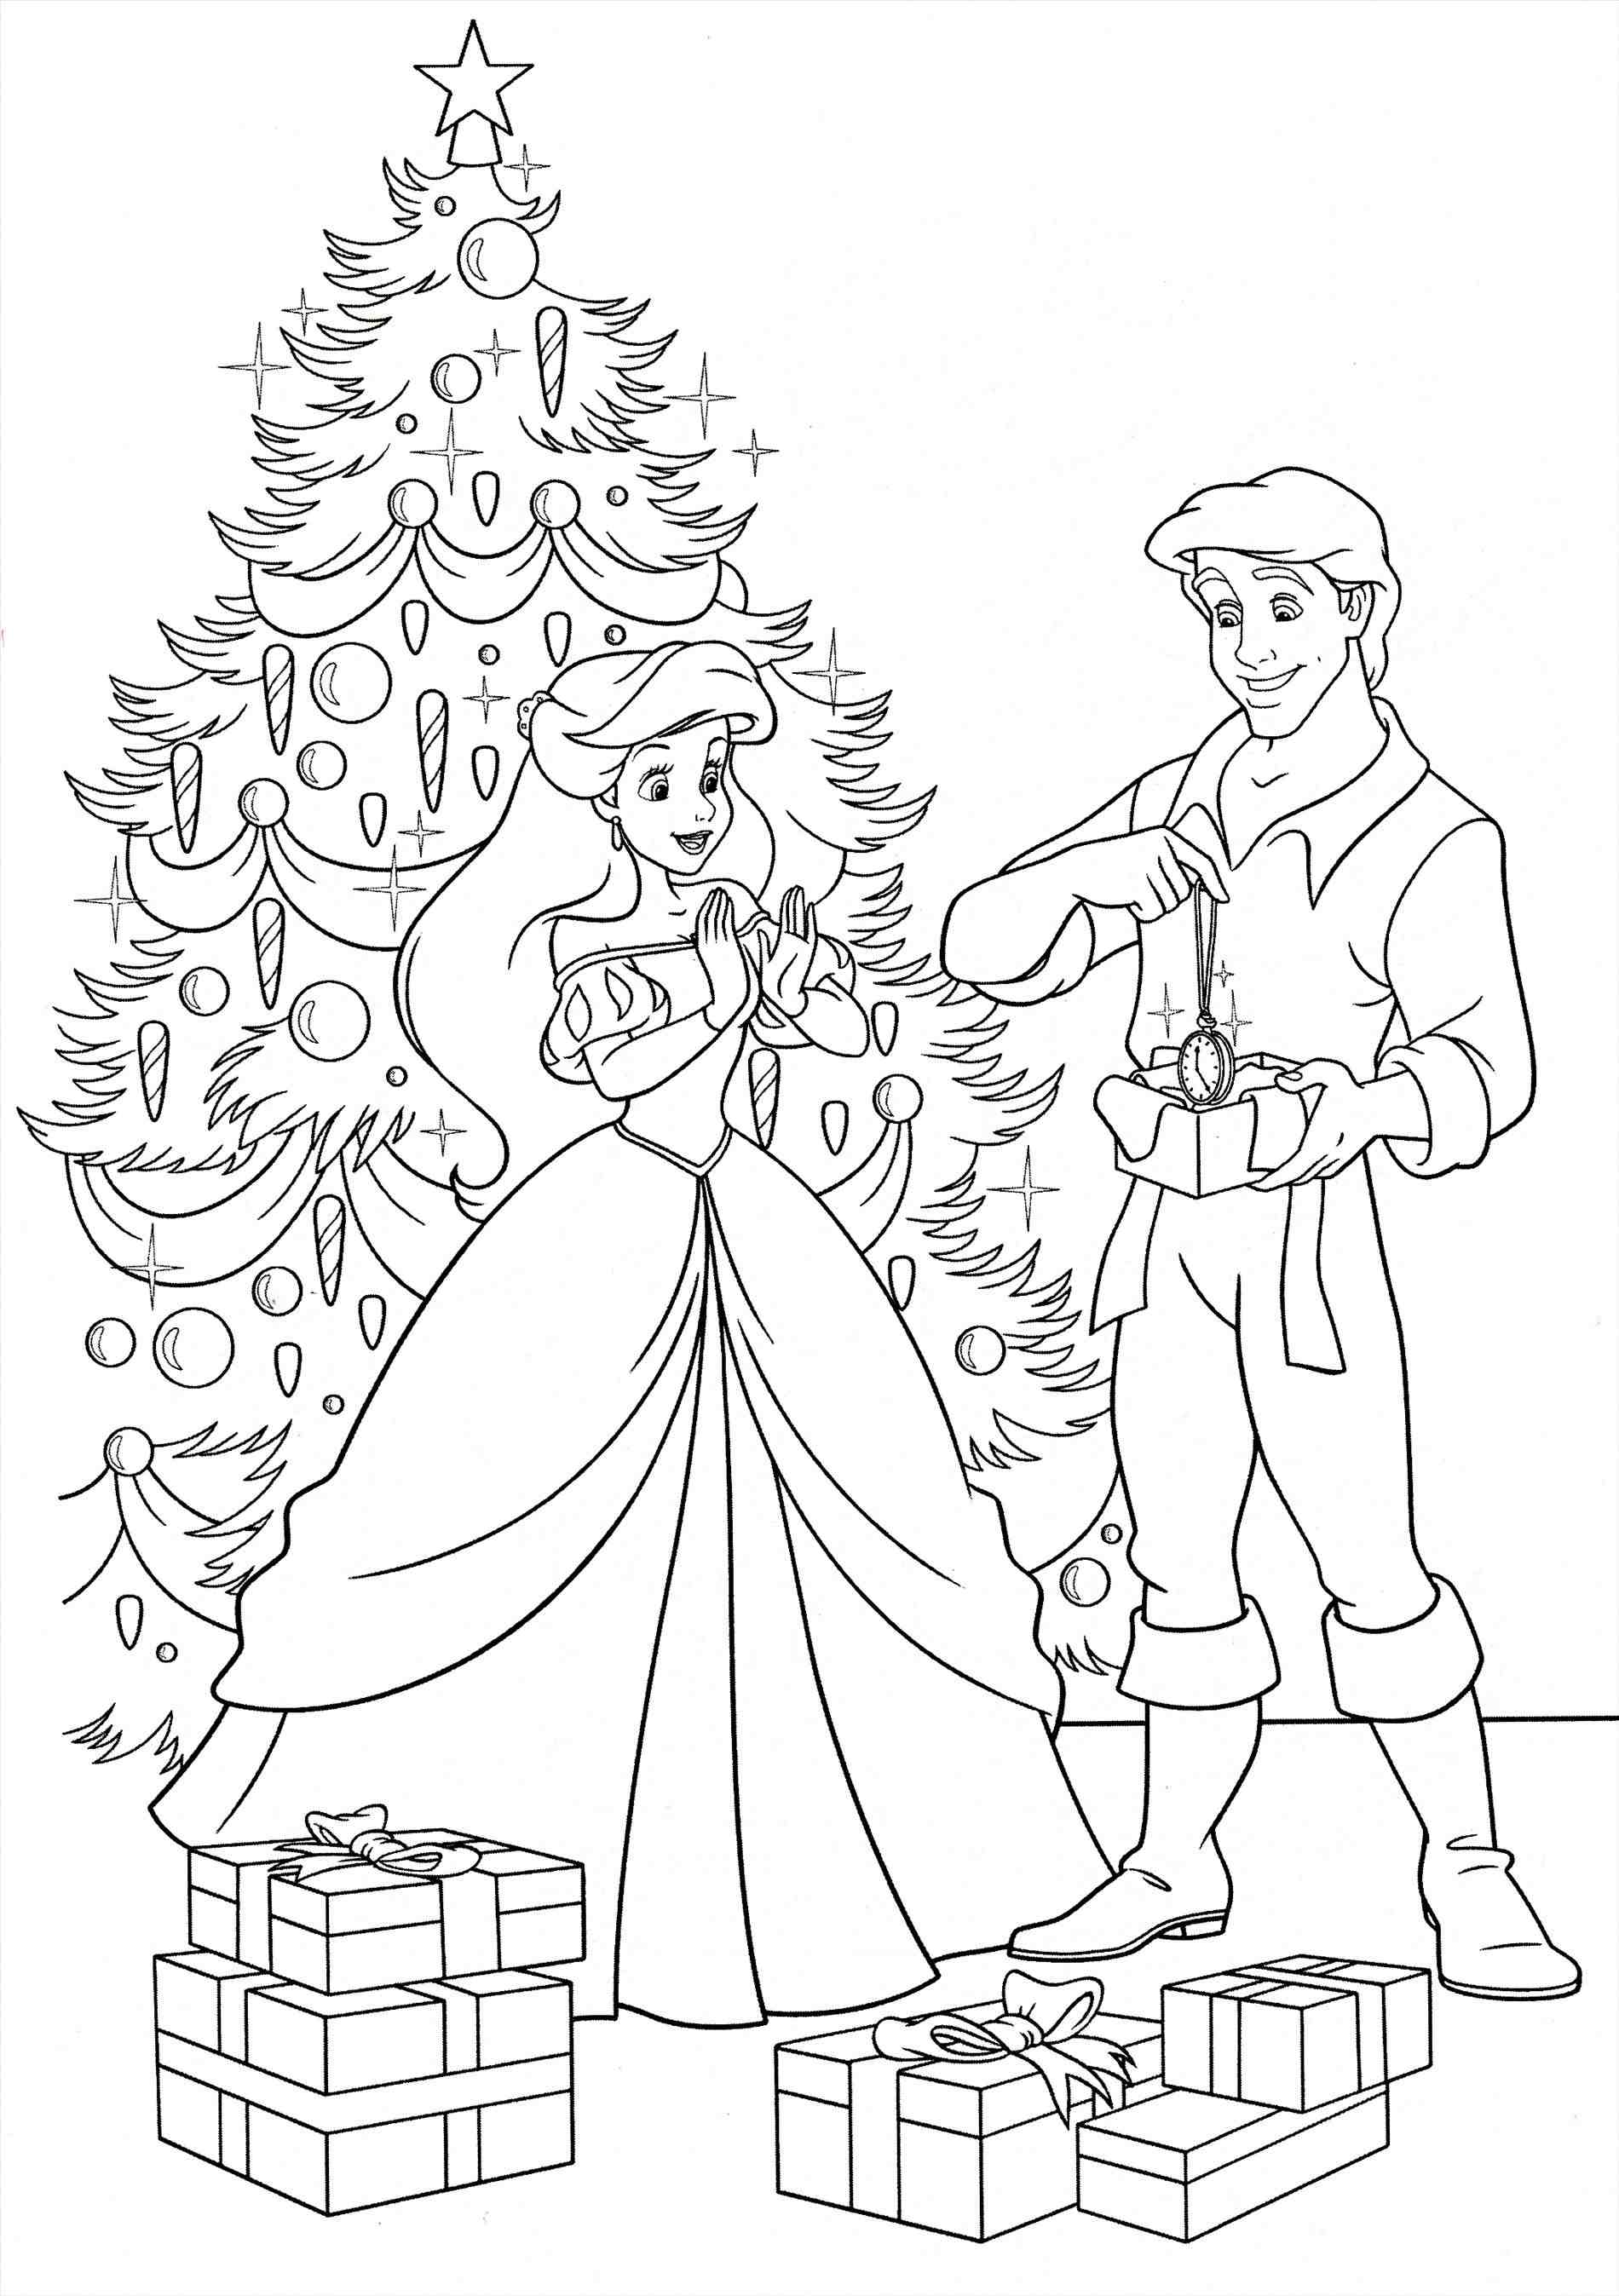 Free Disney Christmas Coloring Sheets With New Pages Princess Collection Printable